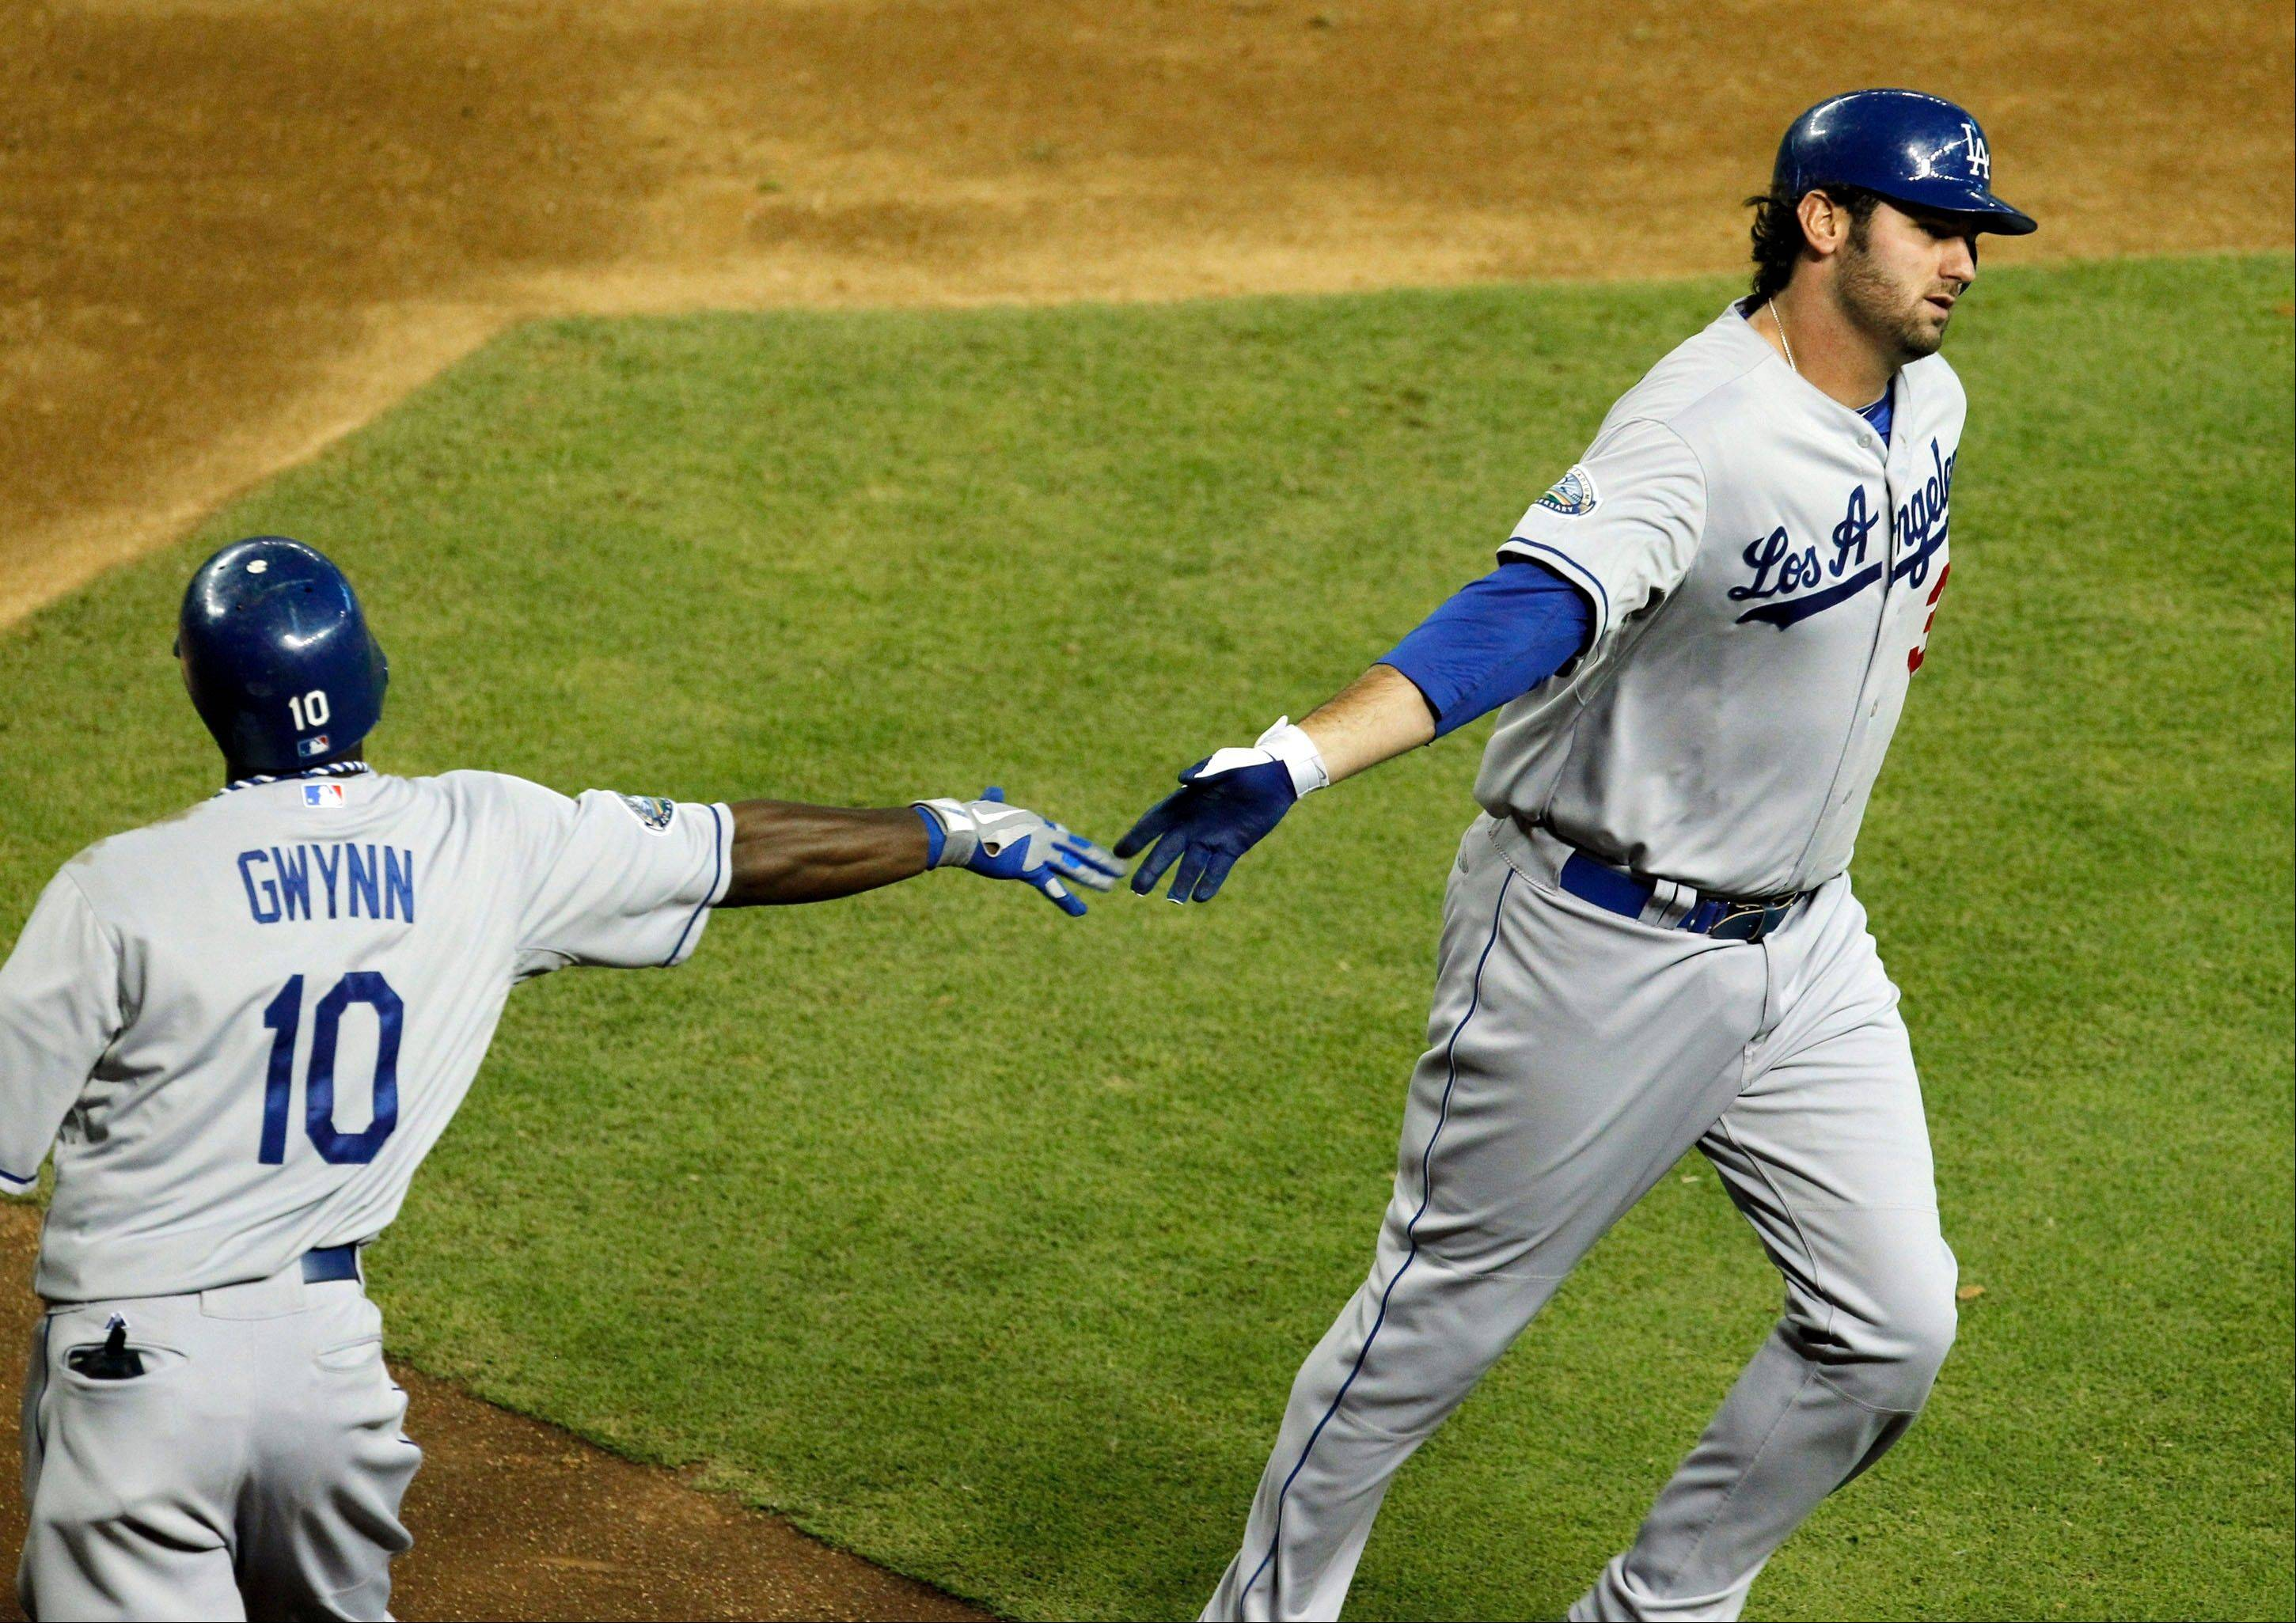 The Dodgers' Scott Van Slyke gets a hand slap from teammate Tony Gwynn Jr. for hitting a home run against the Arizona Diamondbacks in the fourth inning Thursday in Phoenix.